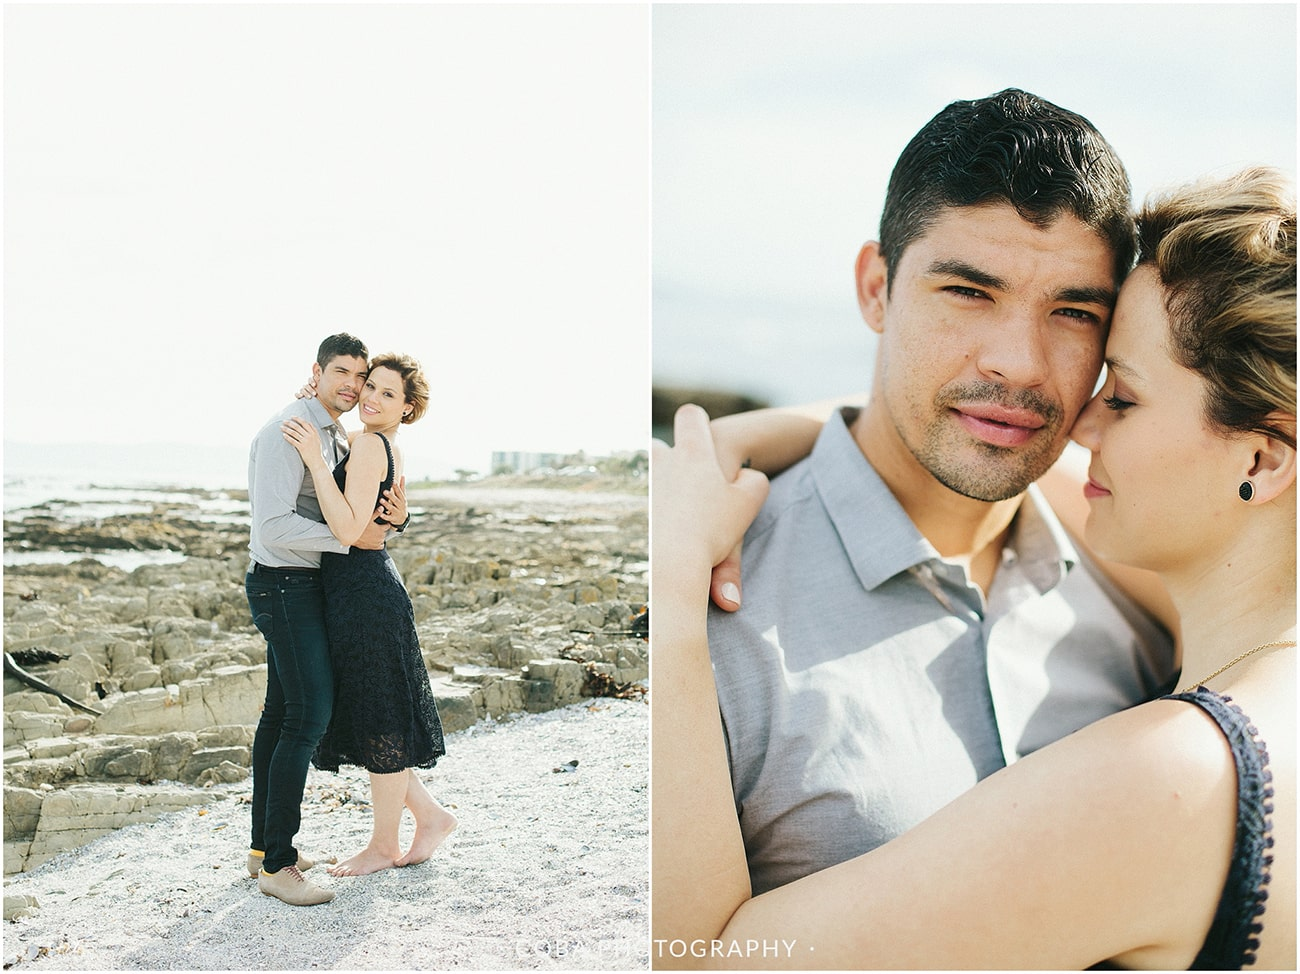 Fernando&taime - engaged - coba photography (28)